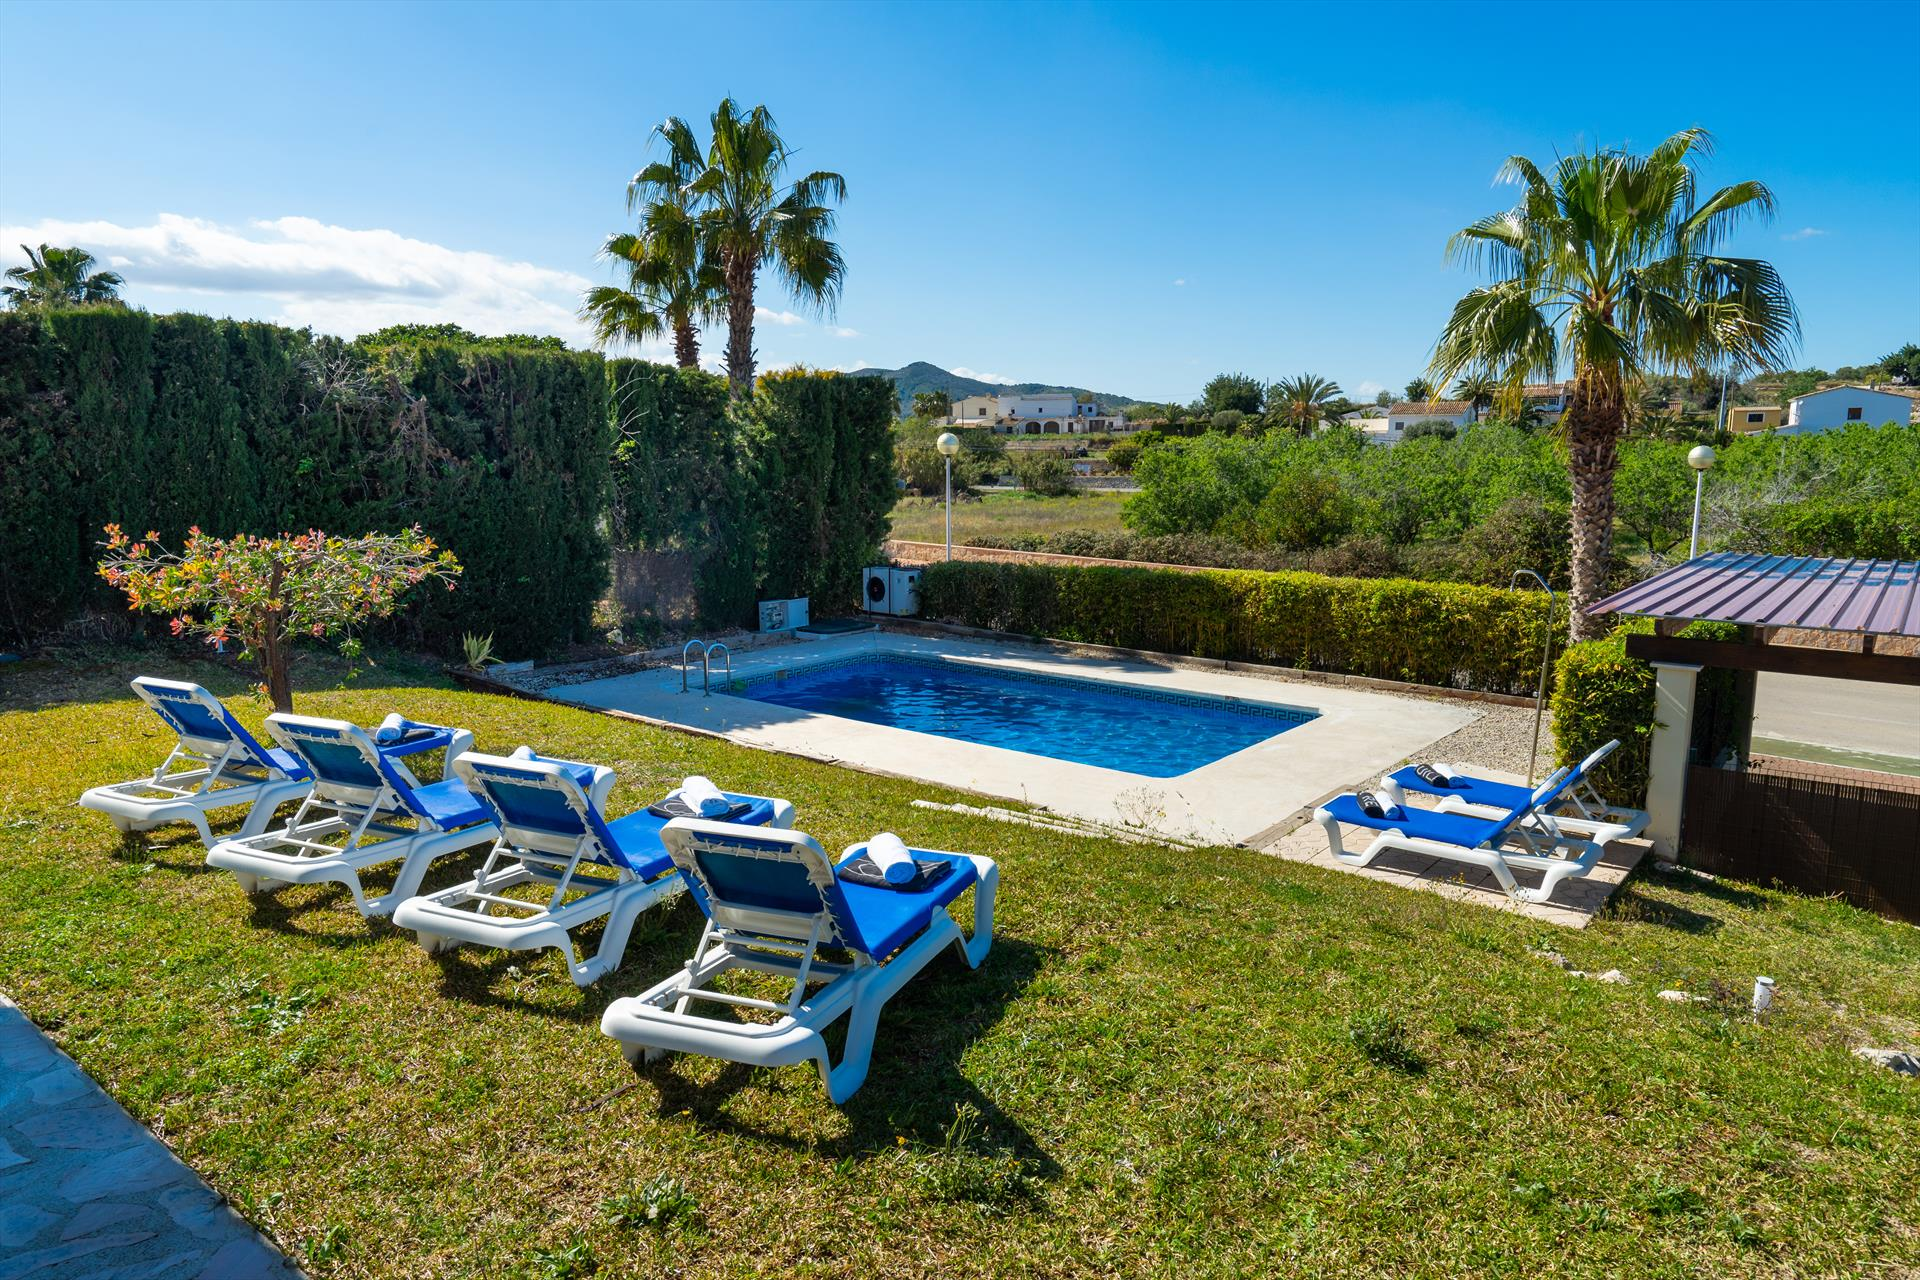 Calmita 4 pax, Modern and comfortable holiday home  with private pool in Javea, on the Costa Blanca, Spain for 4 persons.....